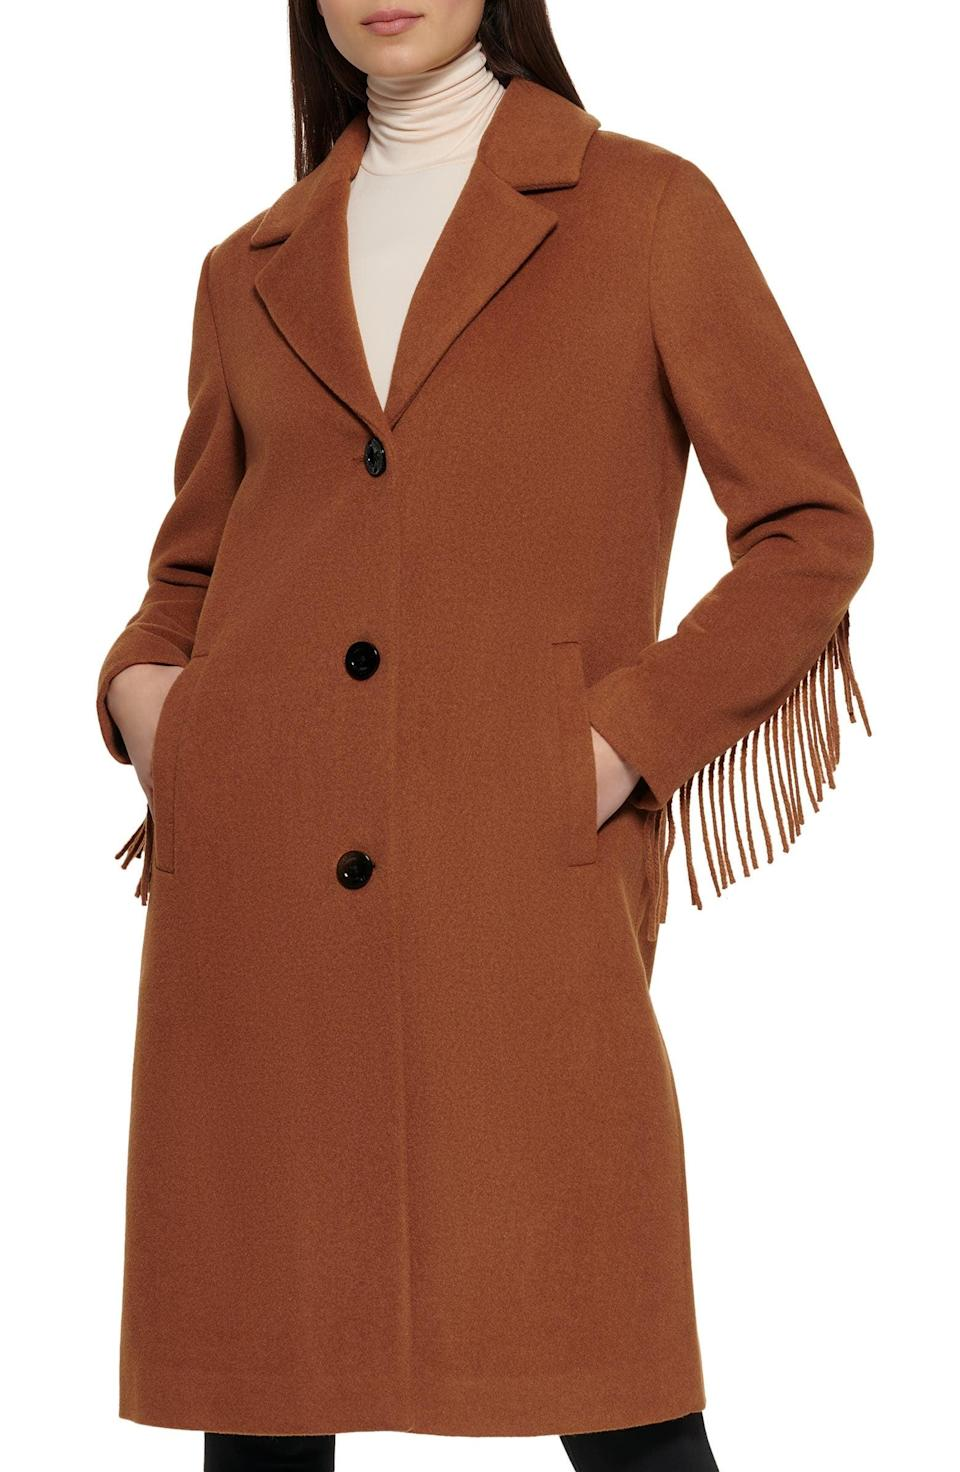 <p>This <span>Kenneth Cole New York Notched Collar Wool Blend Fringe Coat</span> ($179, originally $250) will keep you warm and cozy when temperatures start to dip. We love the fringe on the sleeve.</p>